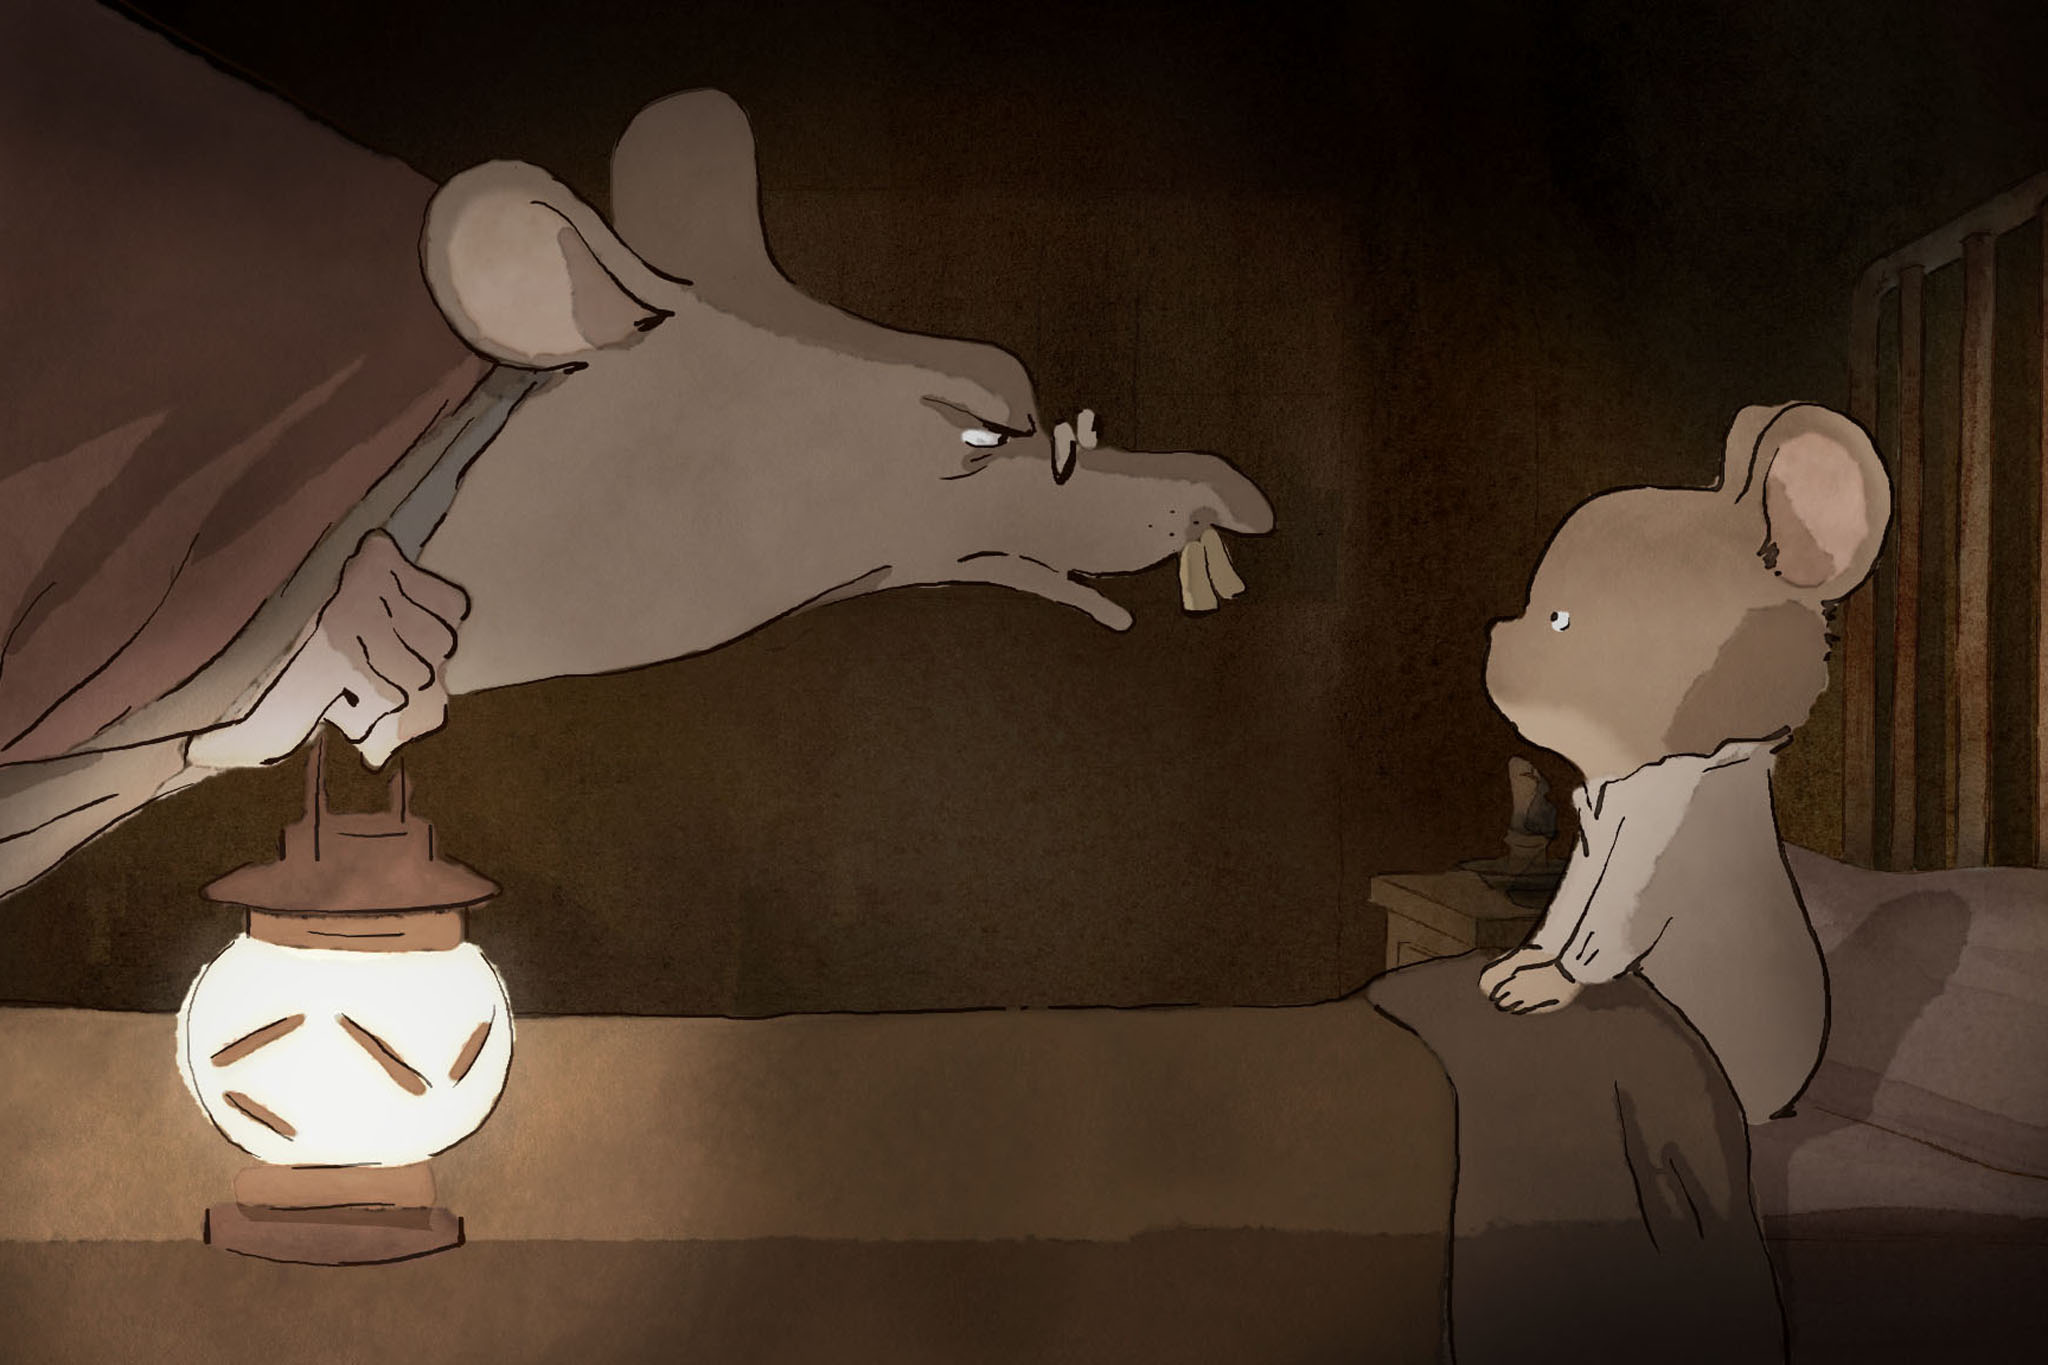 Best animated movies: Ernest & Celestine